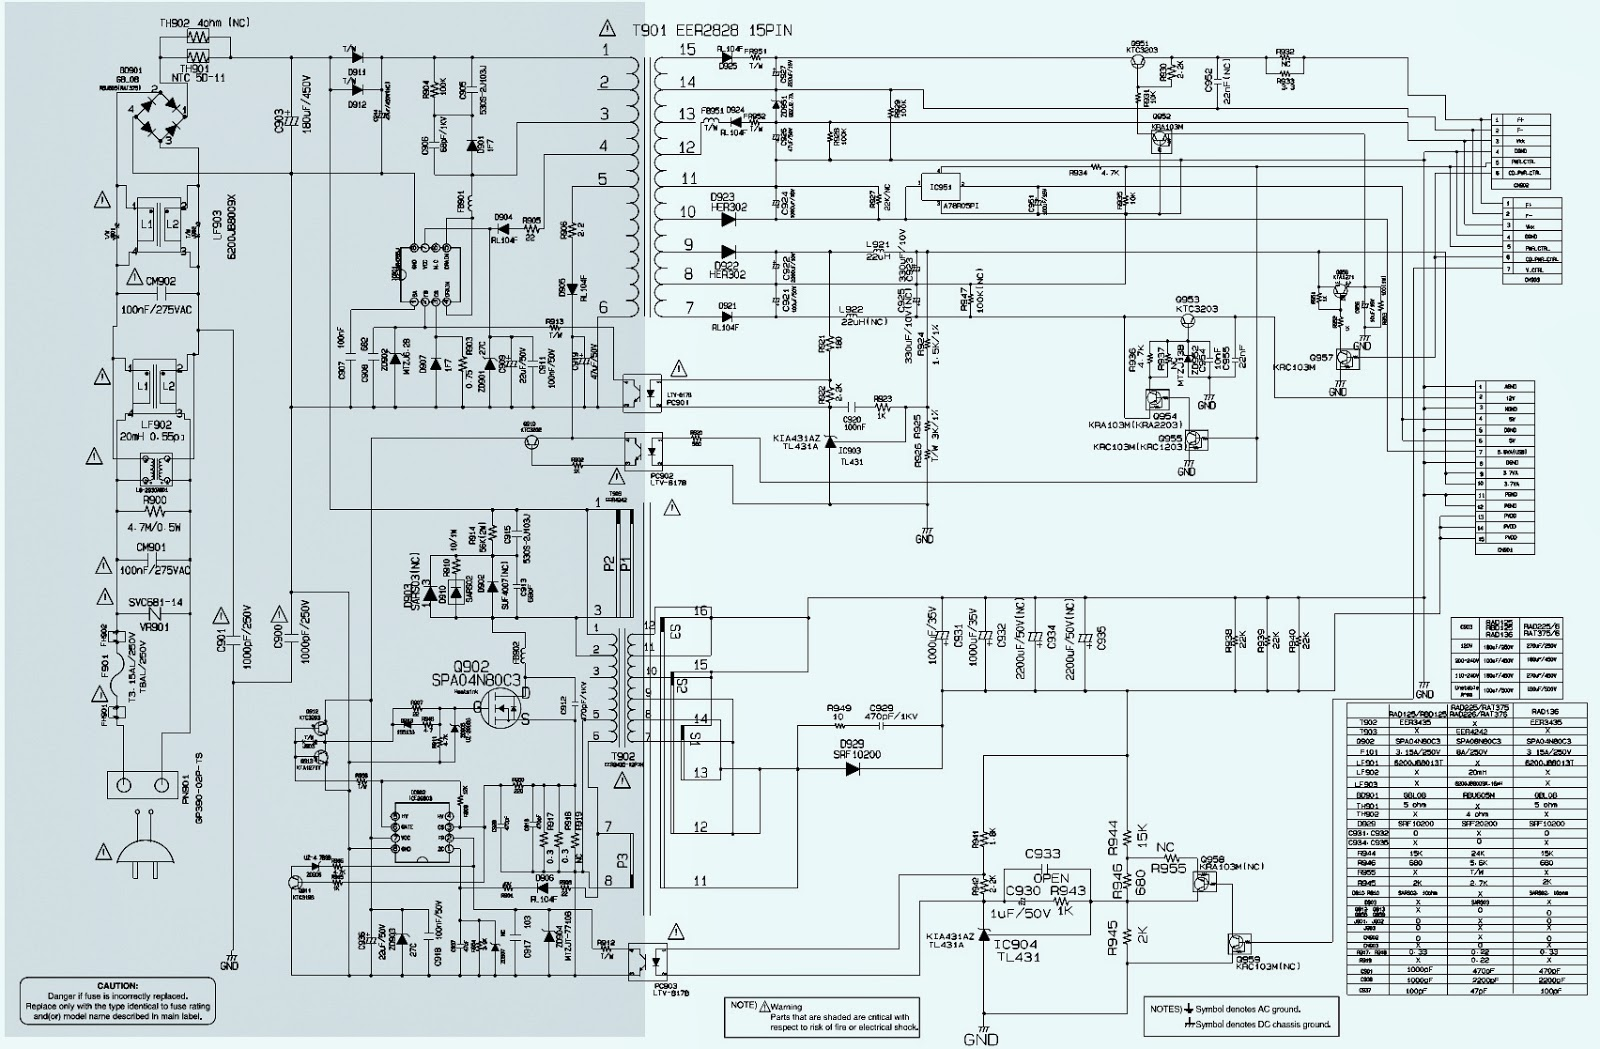 Lg Rat376 Smps Power Supply Schematic Circuit Diagram Mini Of Hi Fi System